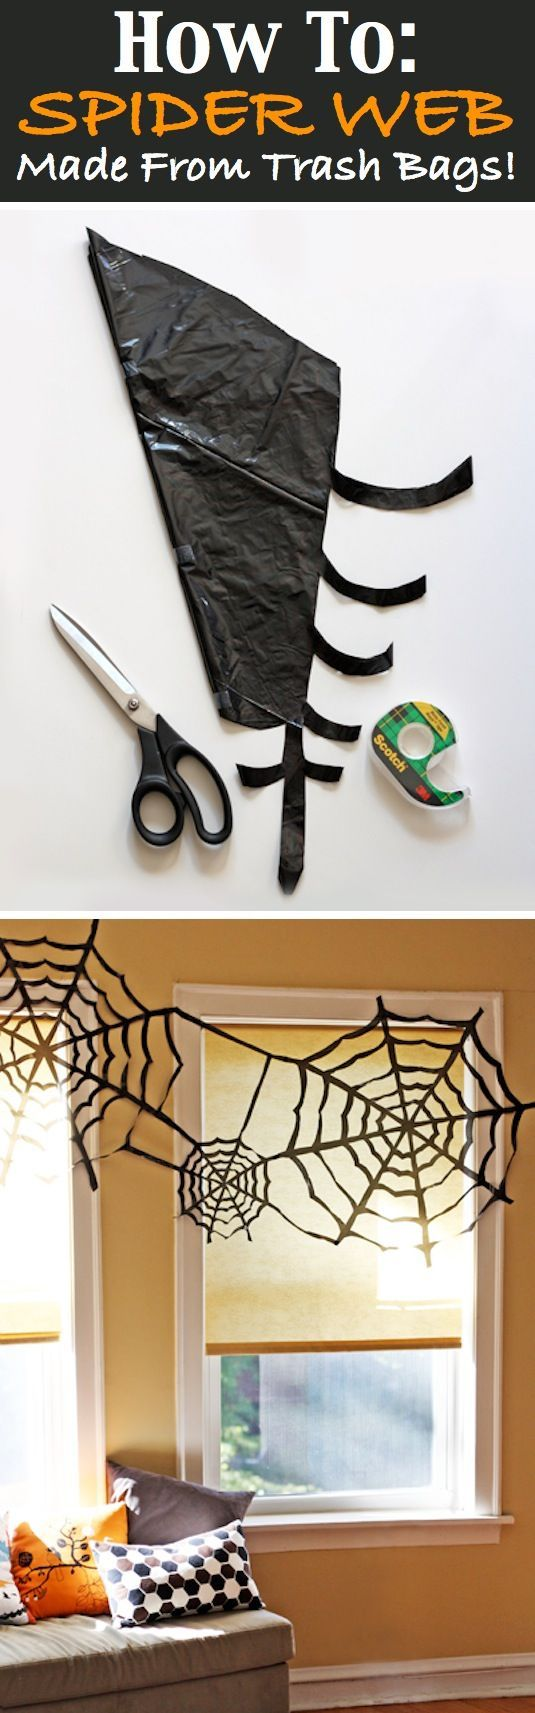 16 easy but awesome homemade halloween decorations trash bag spider web - Easy Homemade Halloween Decorations